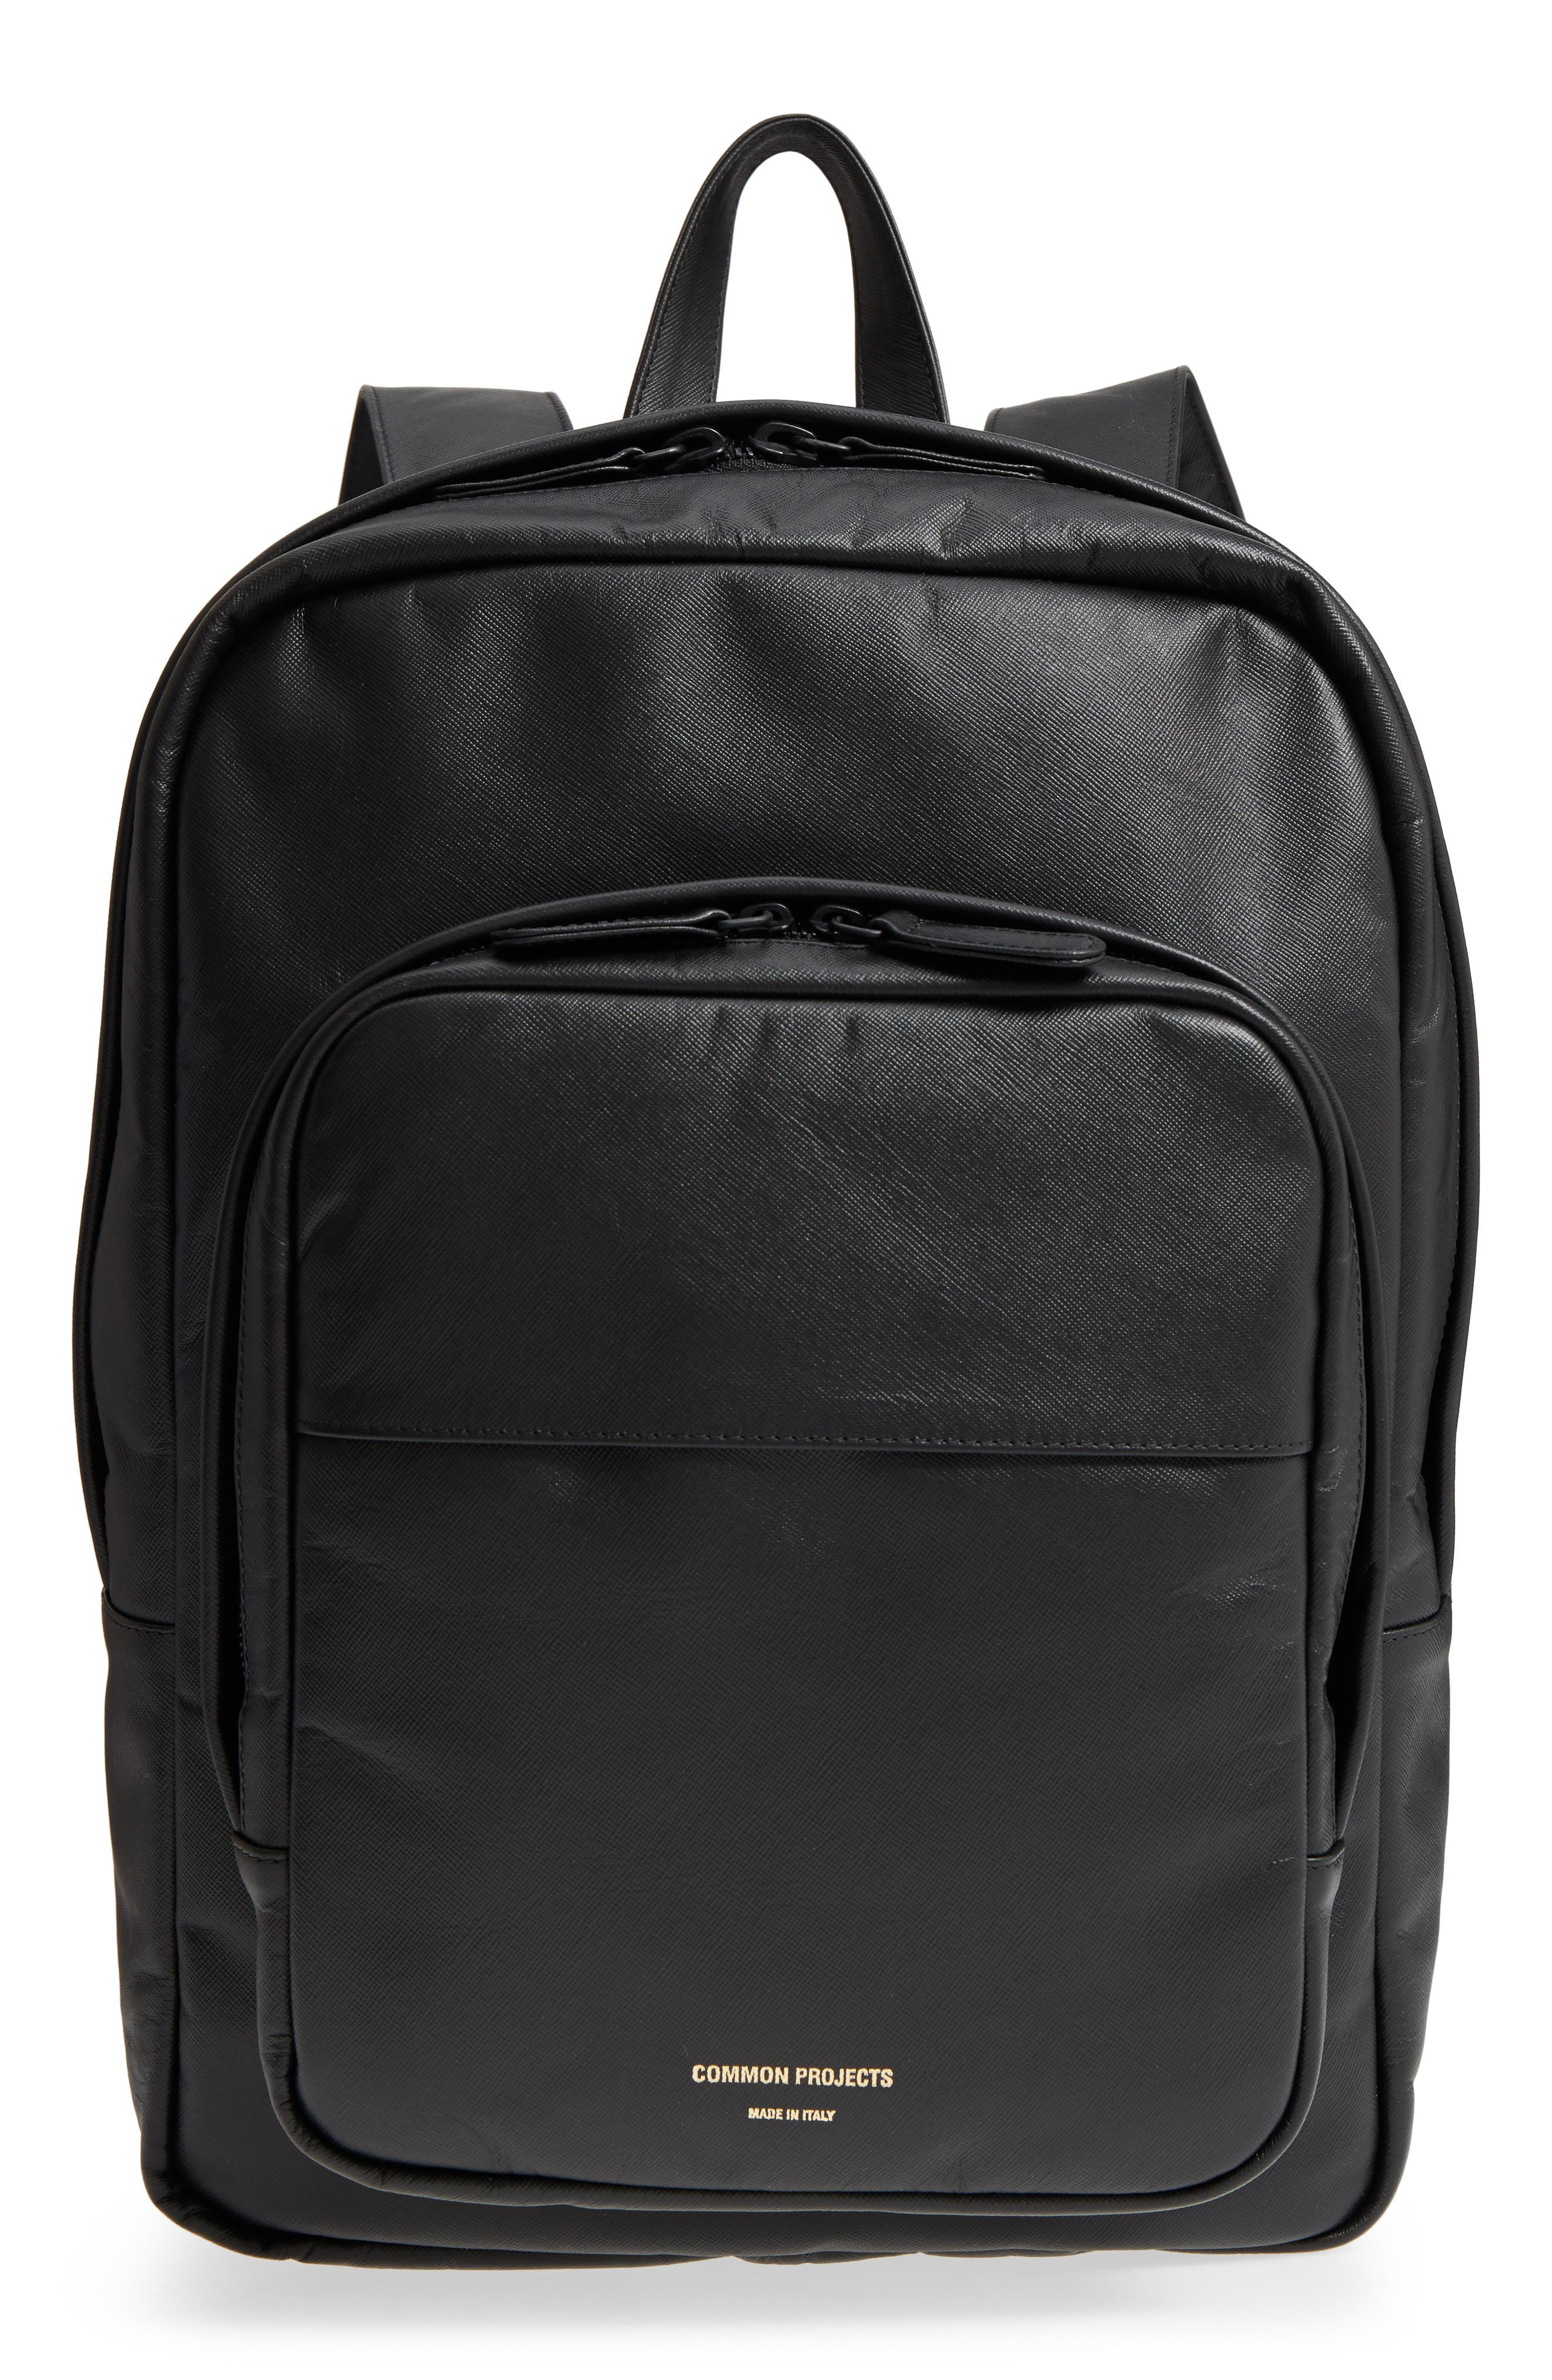 Saffiano Leather Backpack,                             Main thumbnail 1, color,                             001